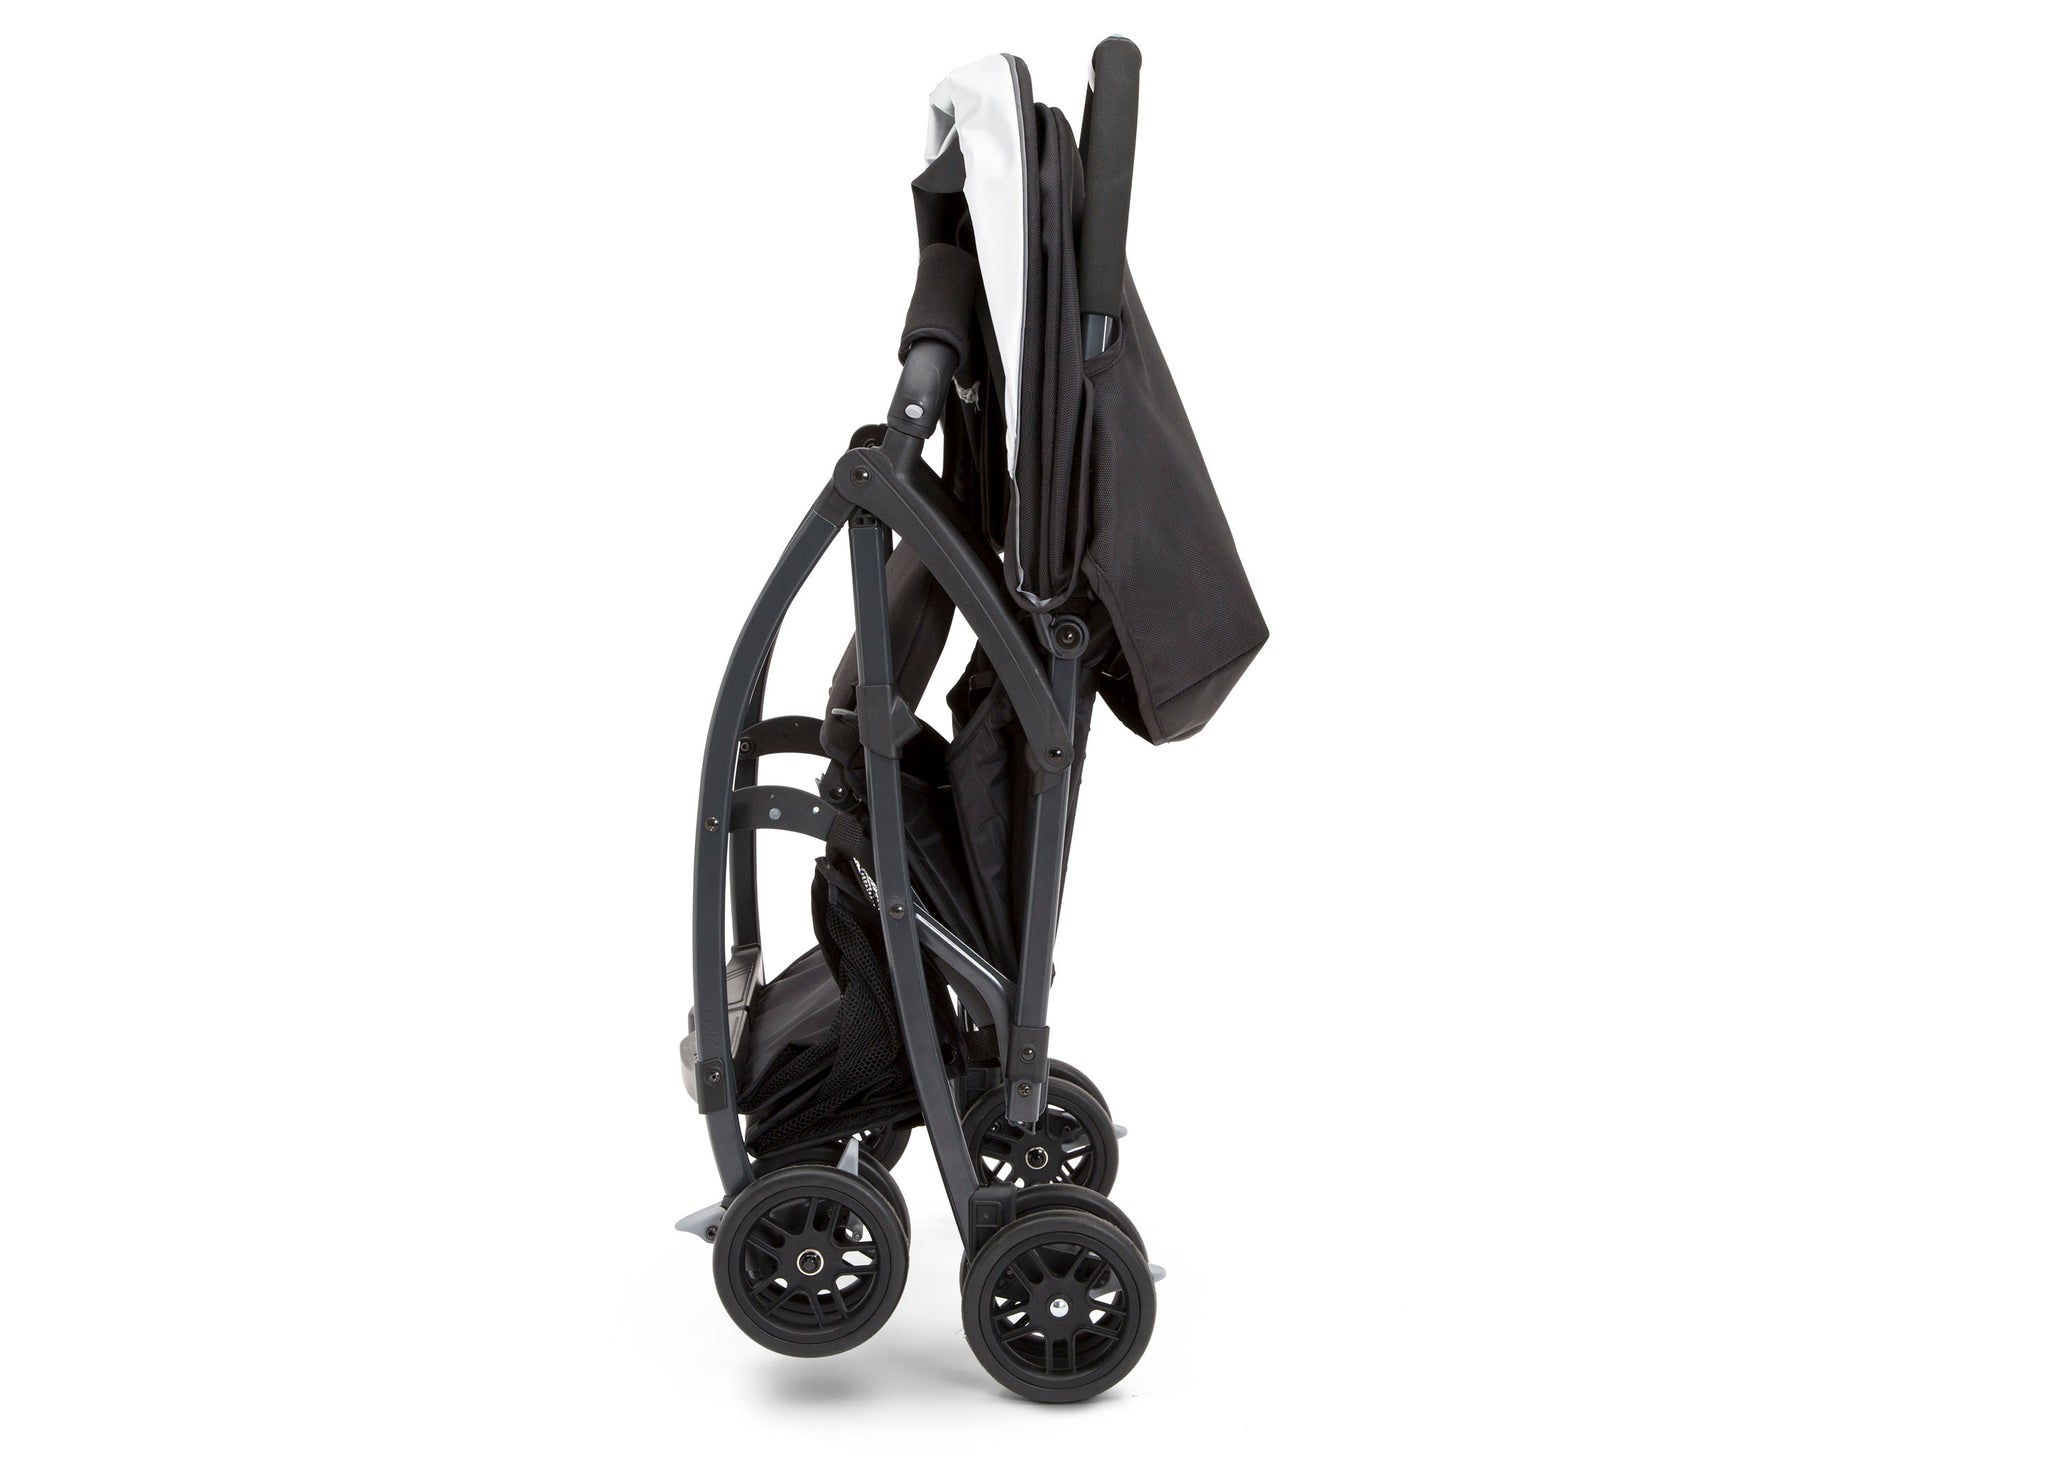 Jeep Ultralight Adventure Stroller by Delta Children, Dusk (2010), can be folded quickly and easily